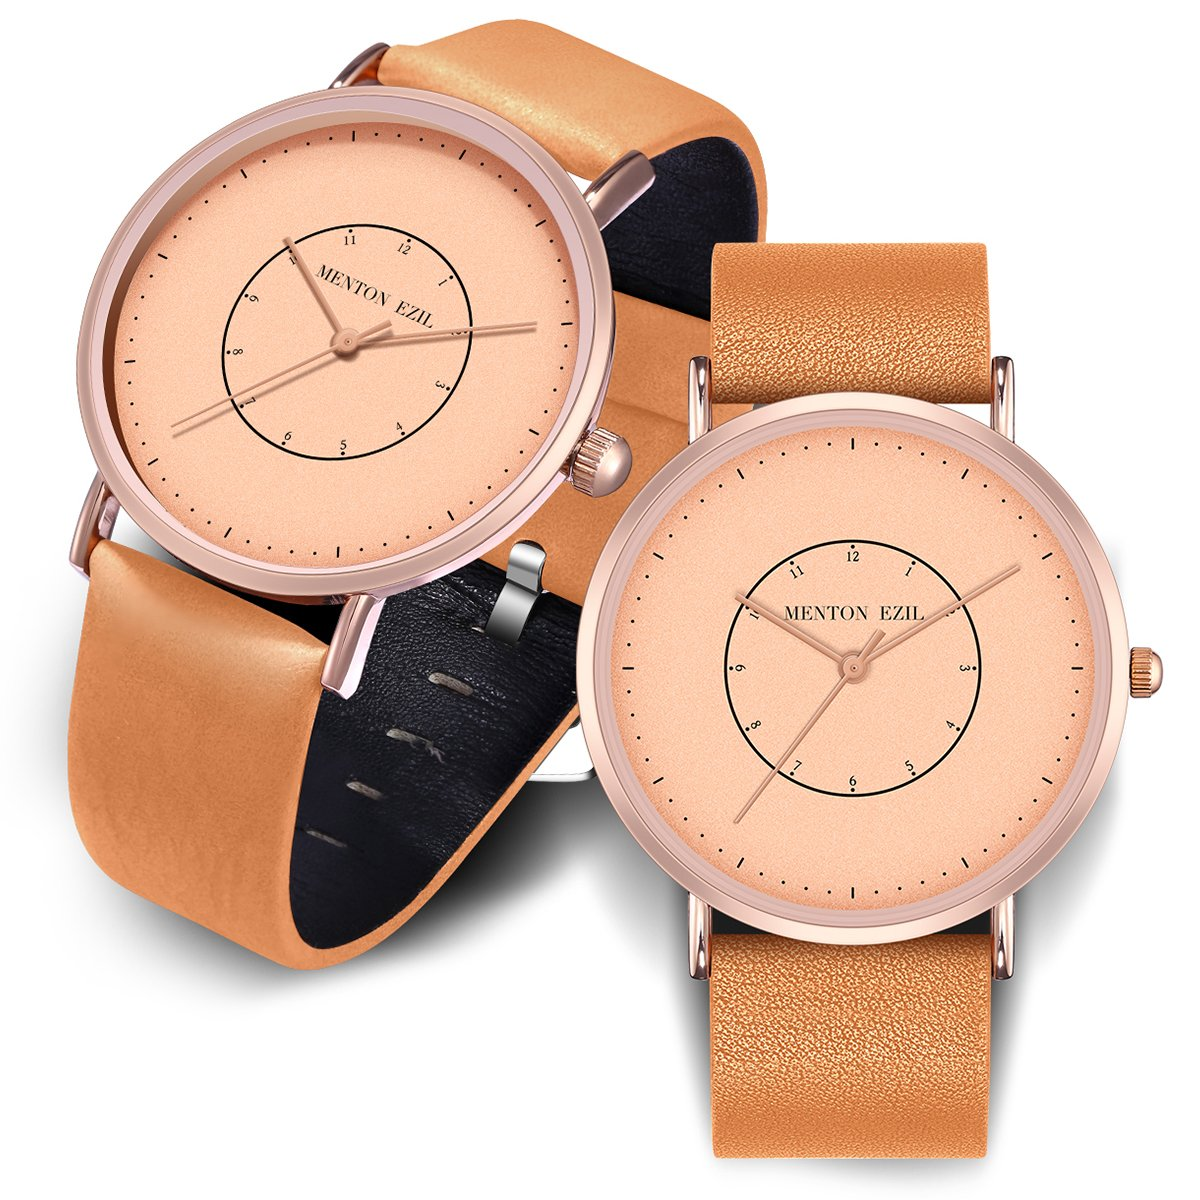 Wooden Couple Watch for Women Men Friendship Relationship 30M Waterproof Classic Quartz Analog Rose Gold Wrist Watches with Brown Leather (Light Brown)